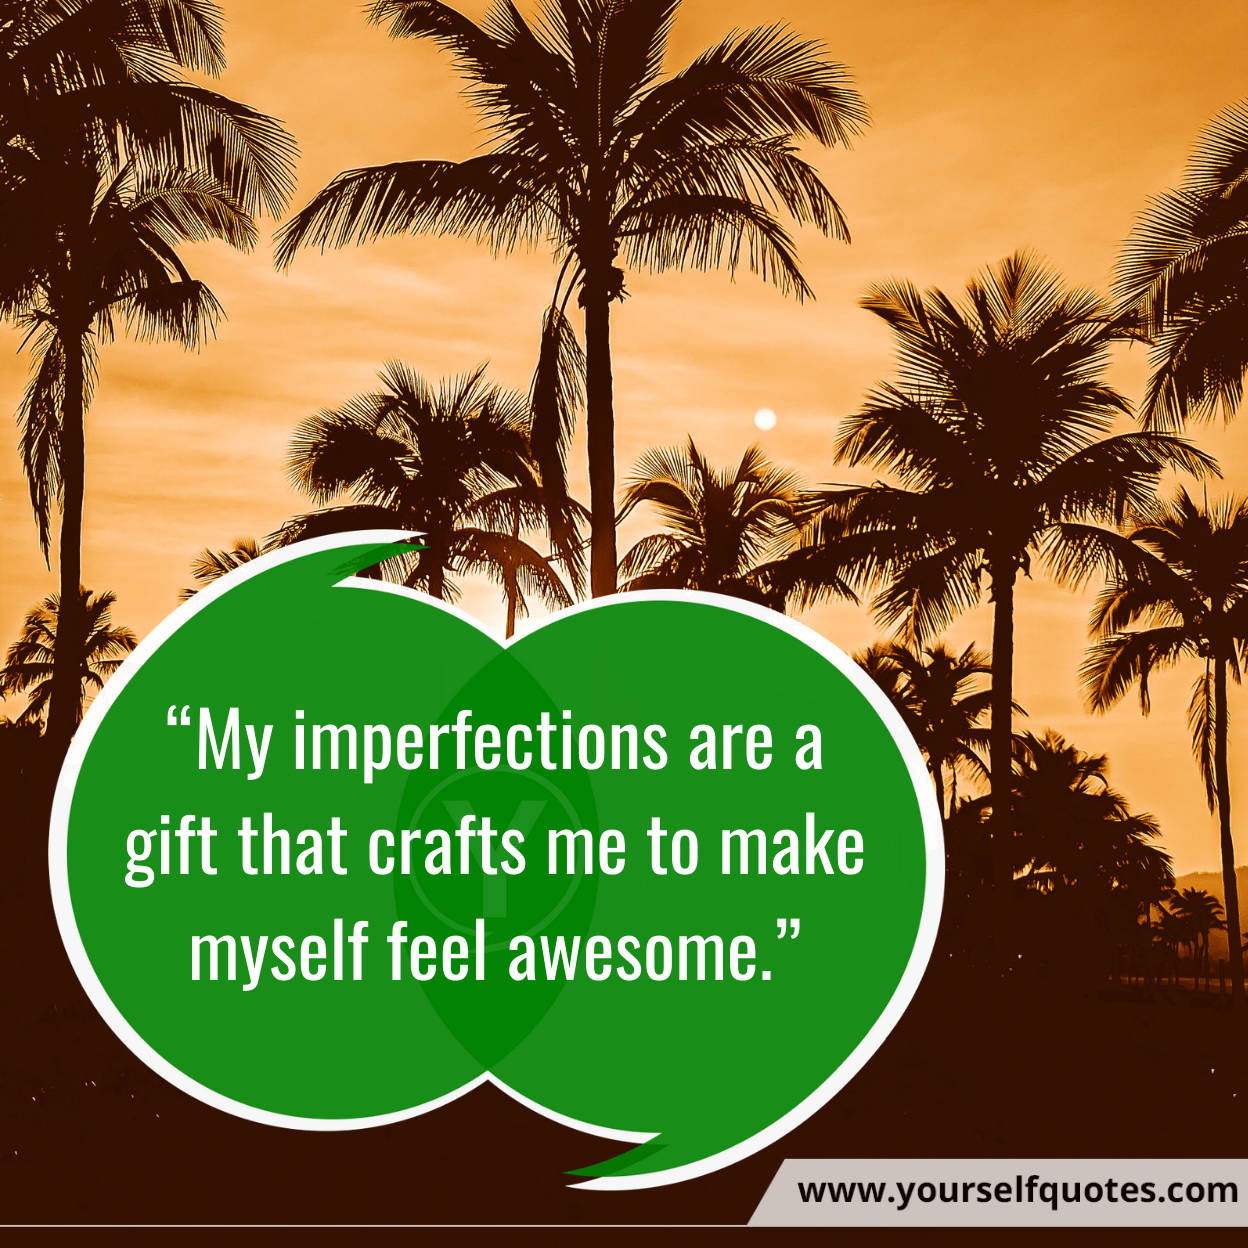 Awesome Quotes on Life